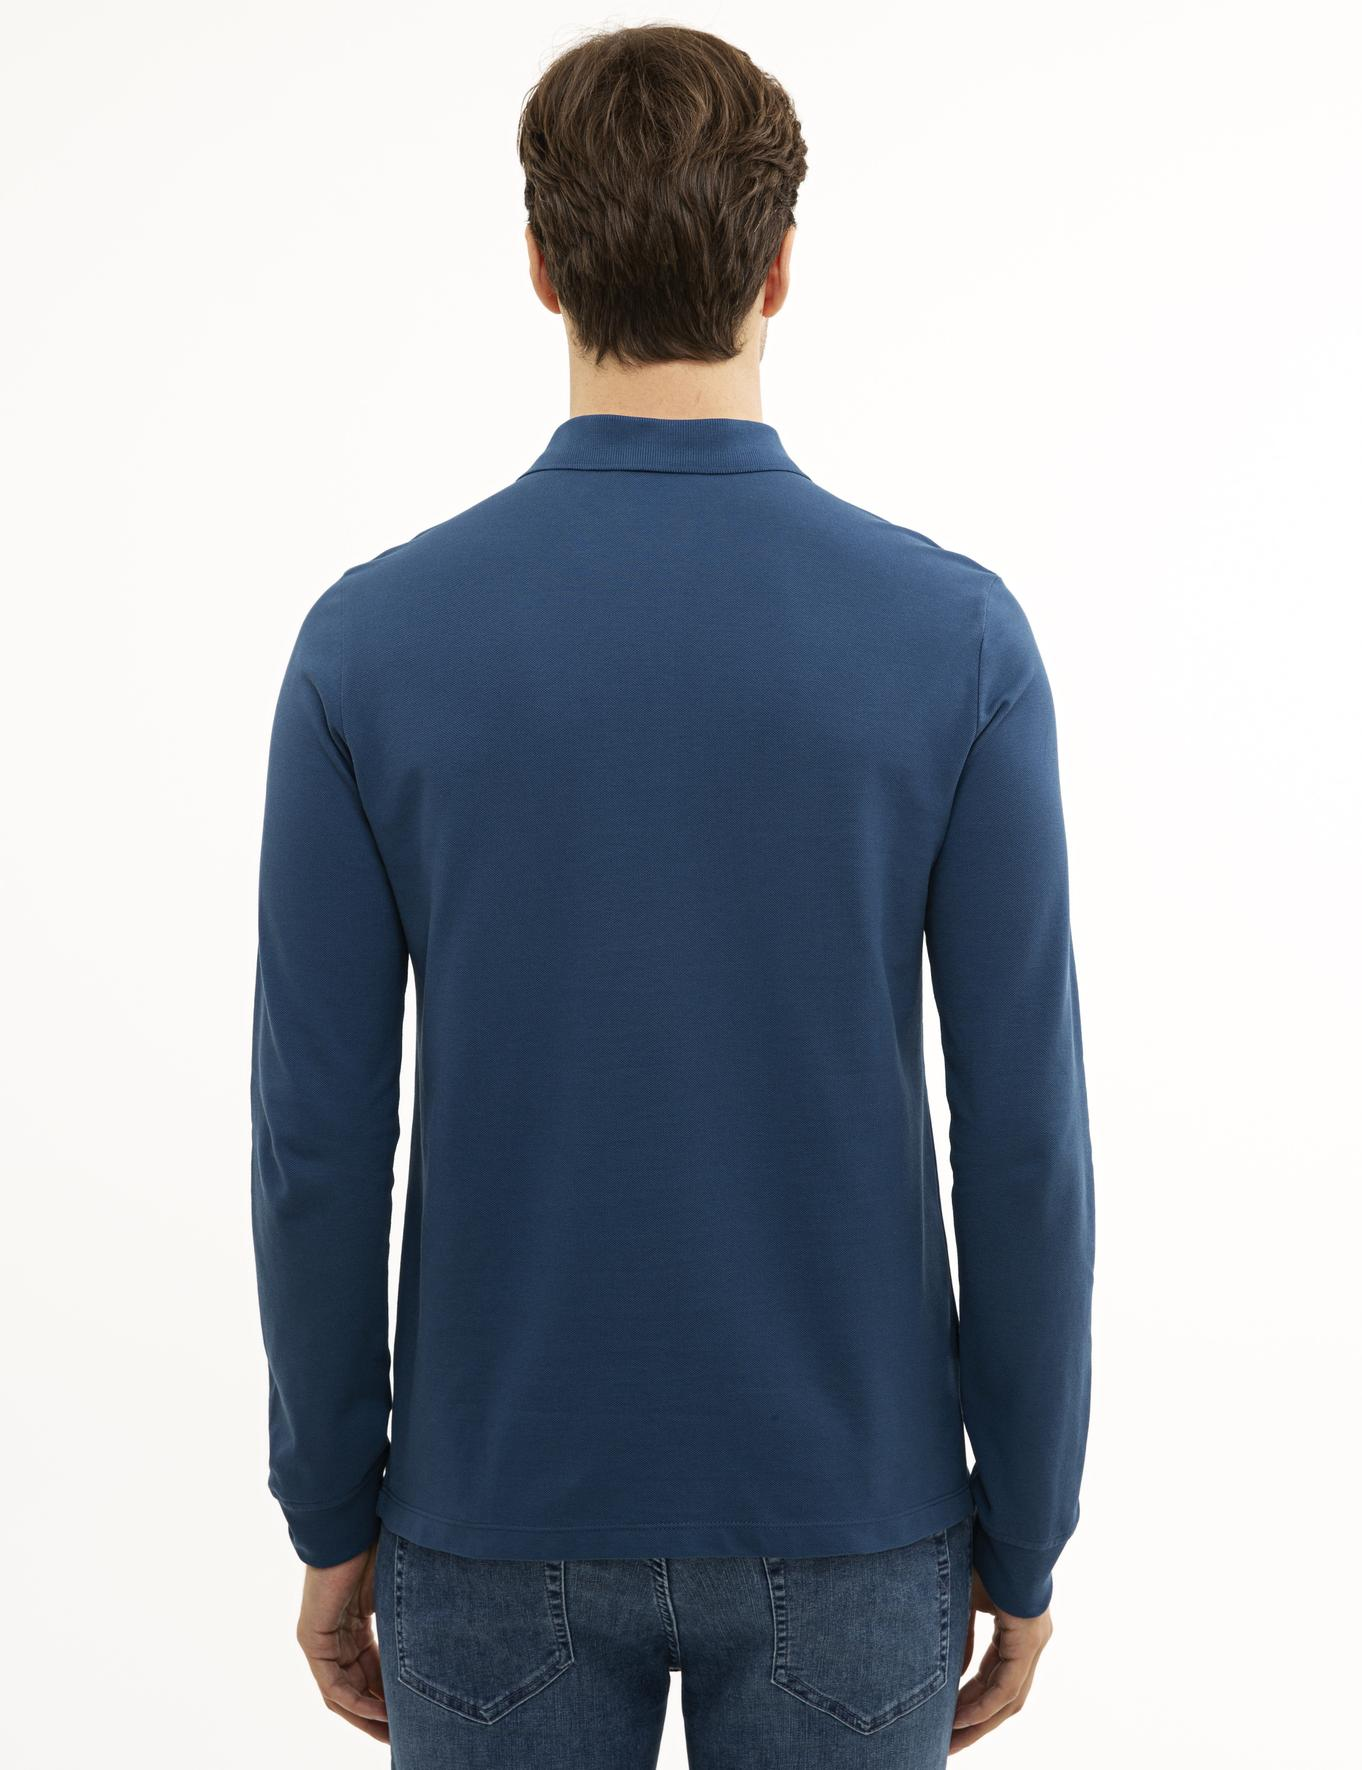 Açık Lacivert Slim Fit Polo Yaka Sweatshirt